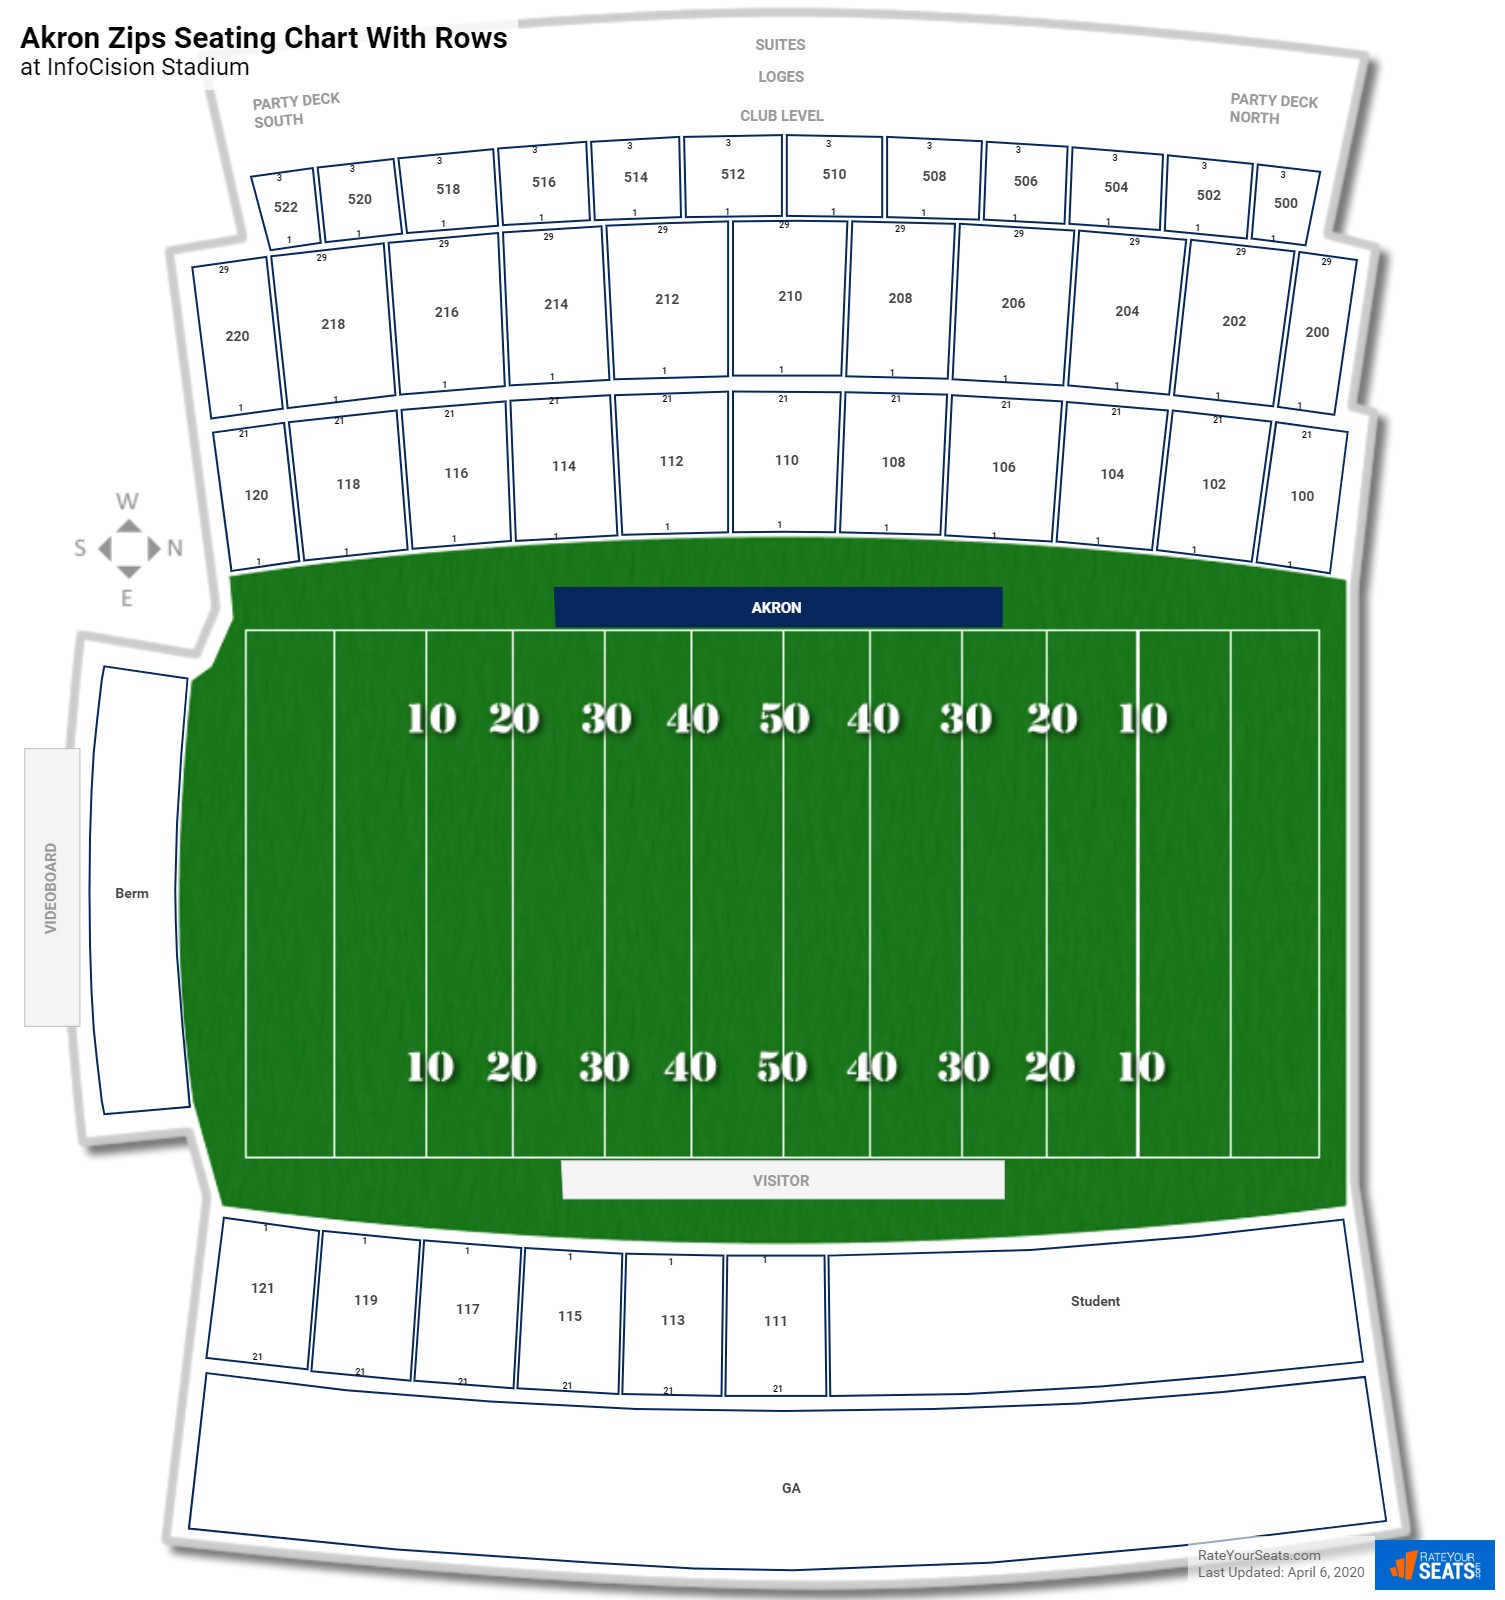 InfoCision Stadium seating chart with rows